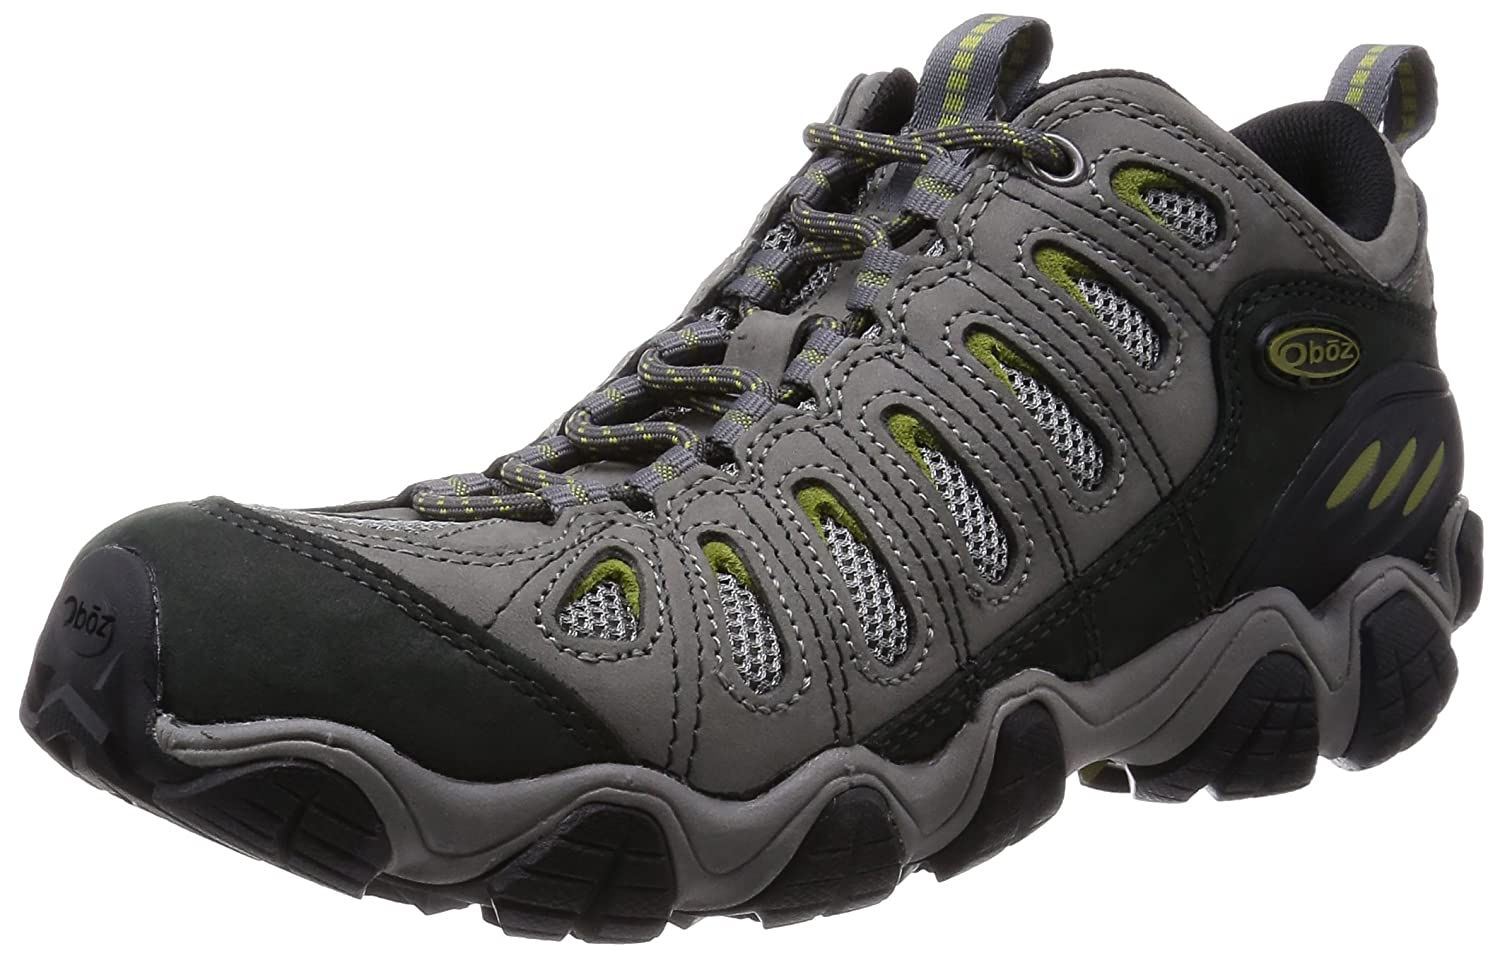 Oboz Men's Sawtooth Low Light Hiking Shoe